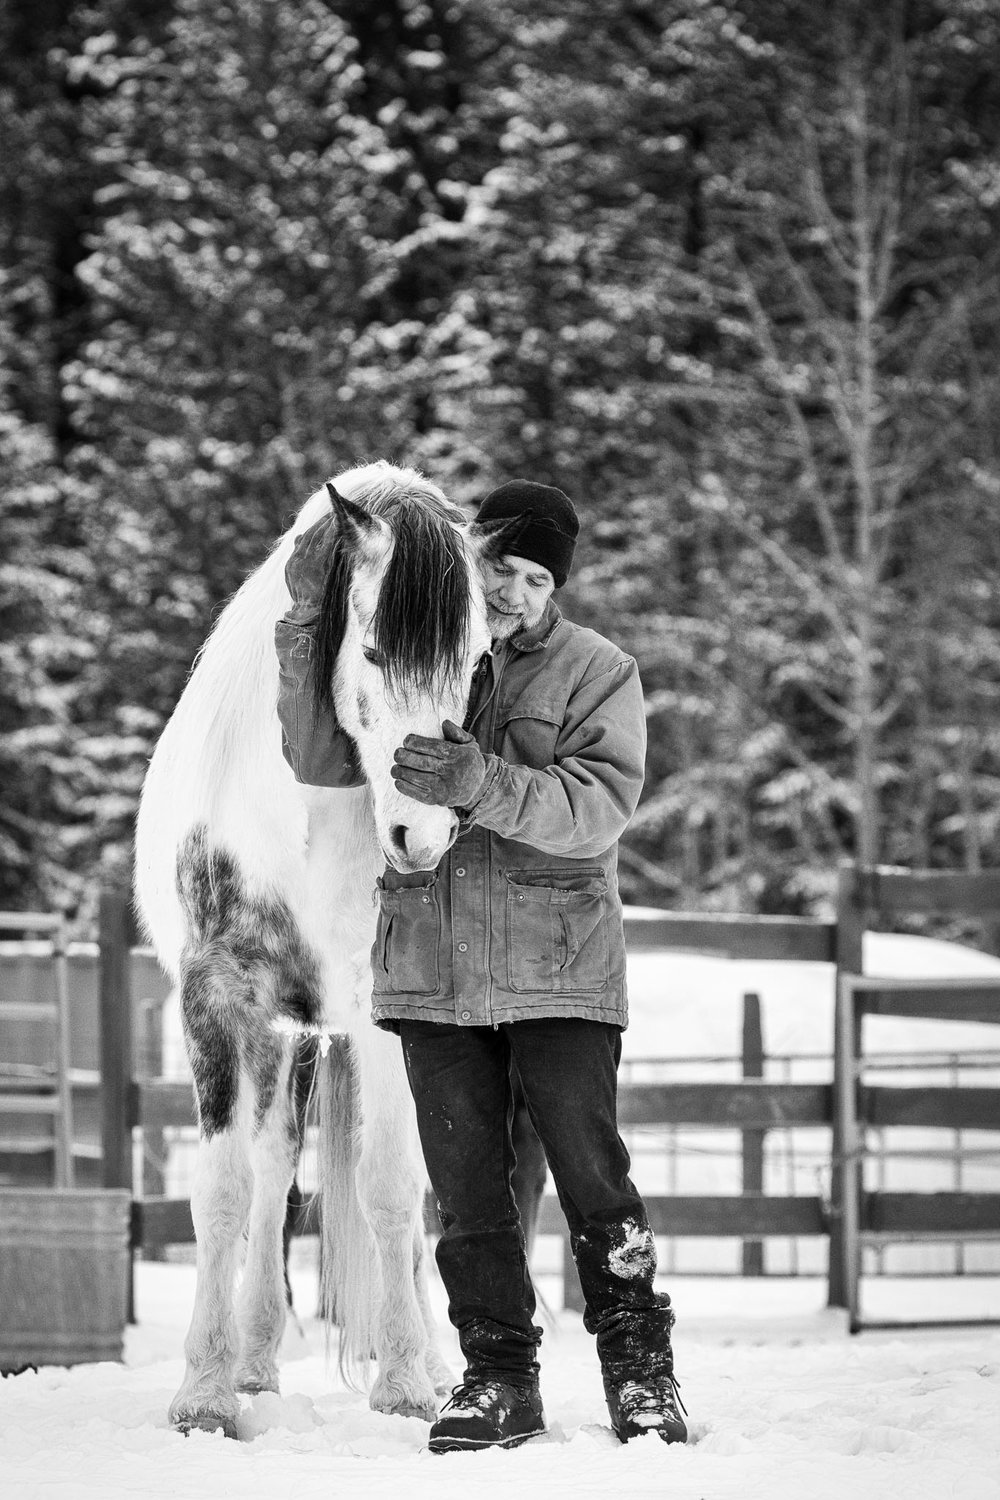 Man and horse connection